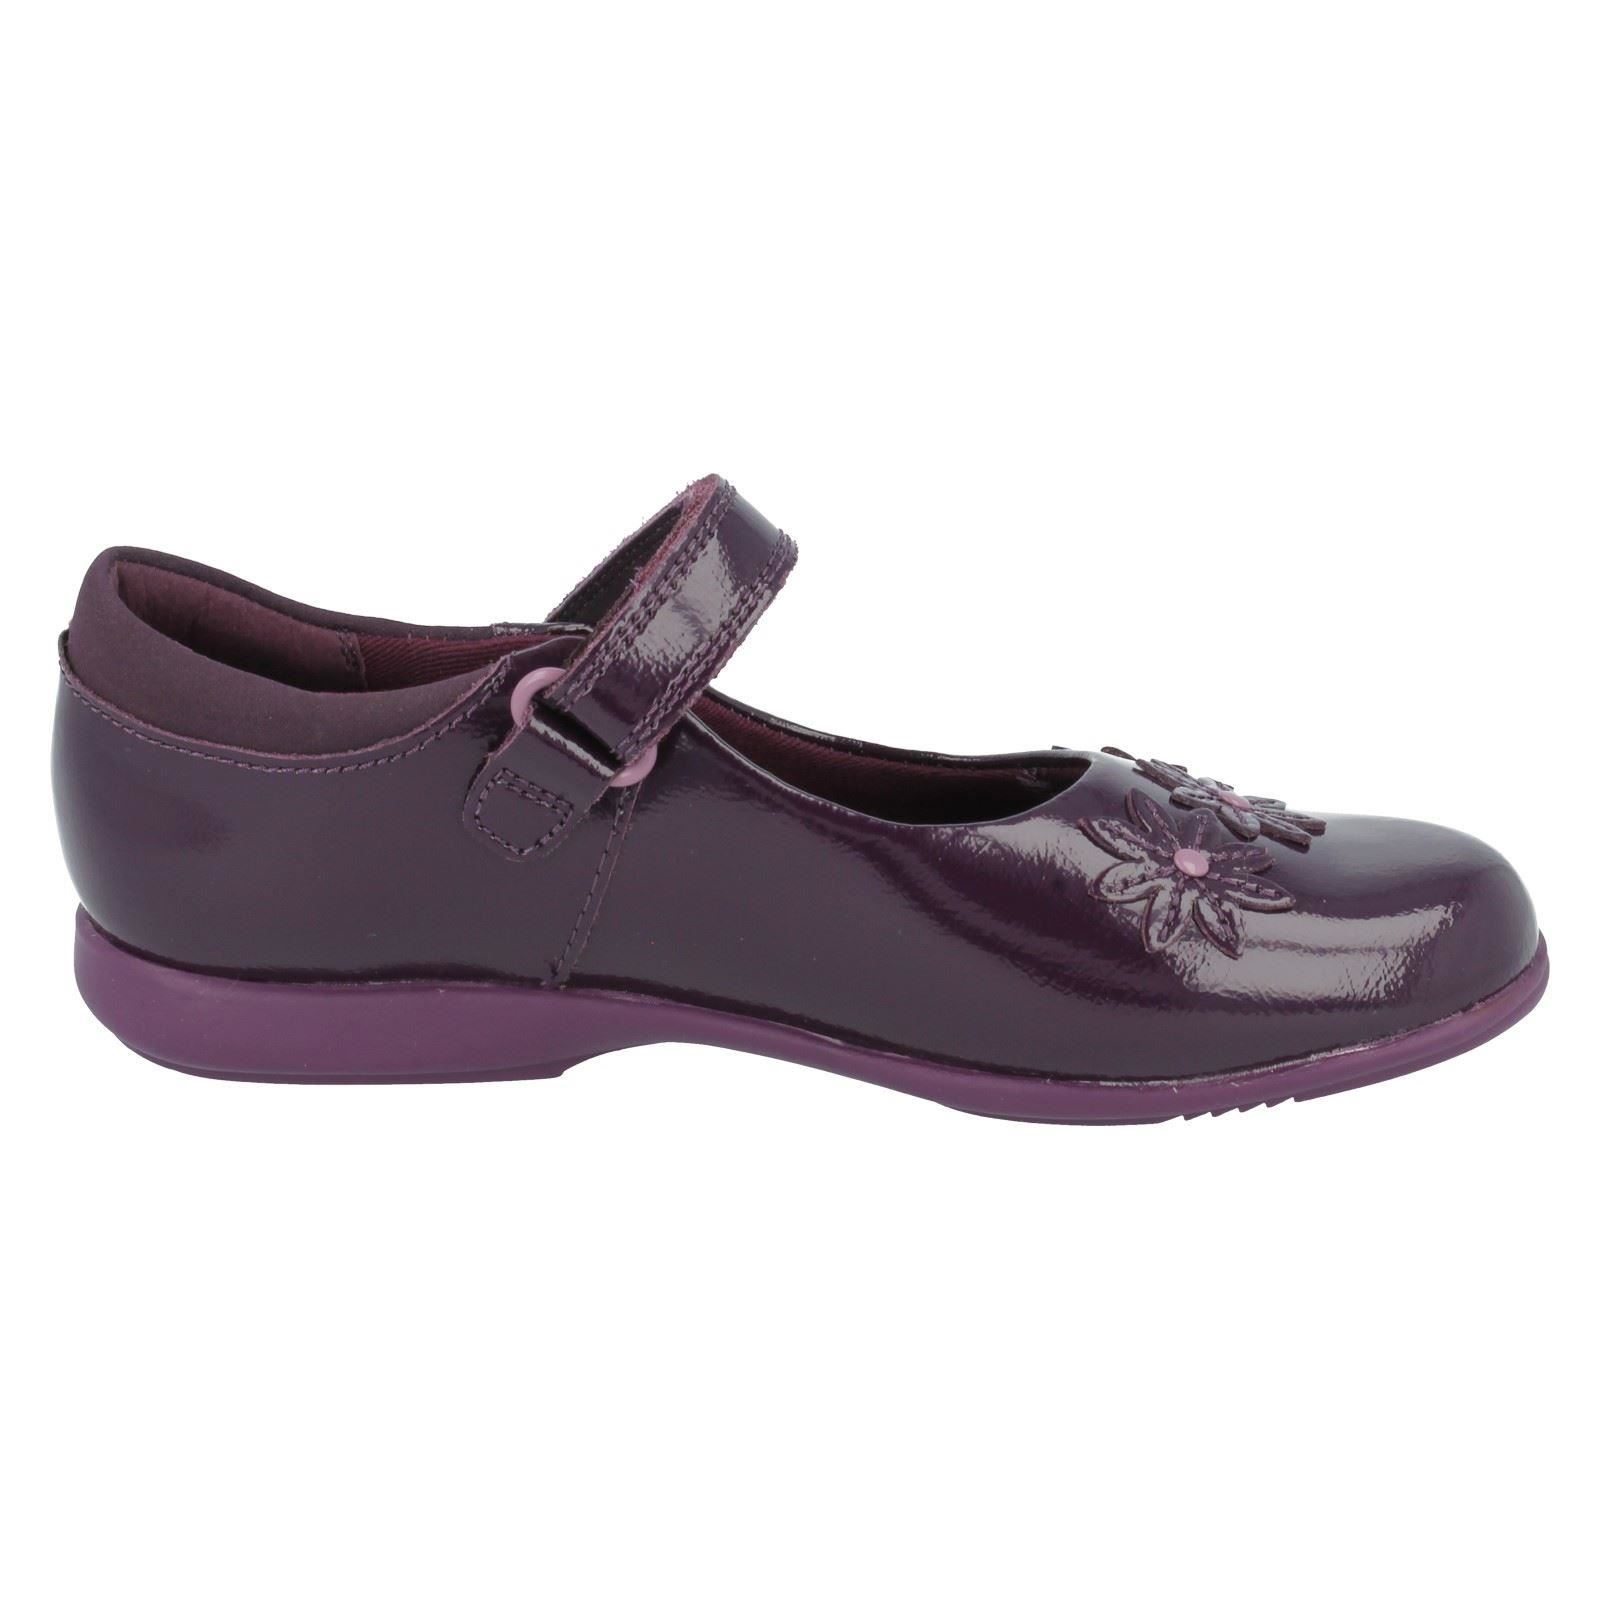 Girls Clarks Shoes The Style - Trixi Beth